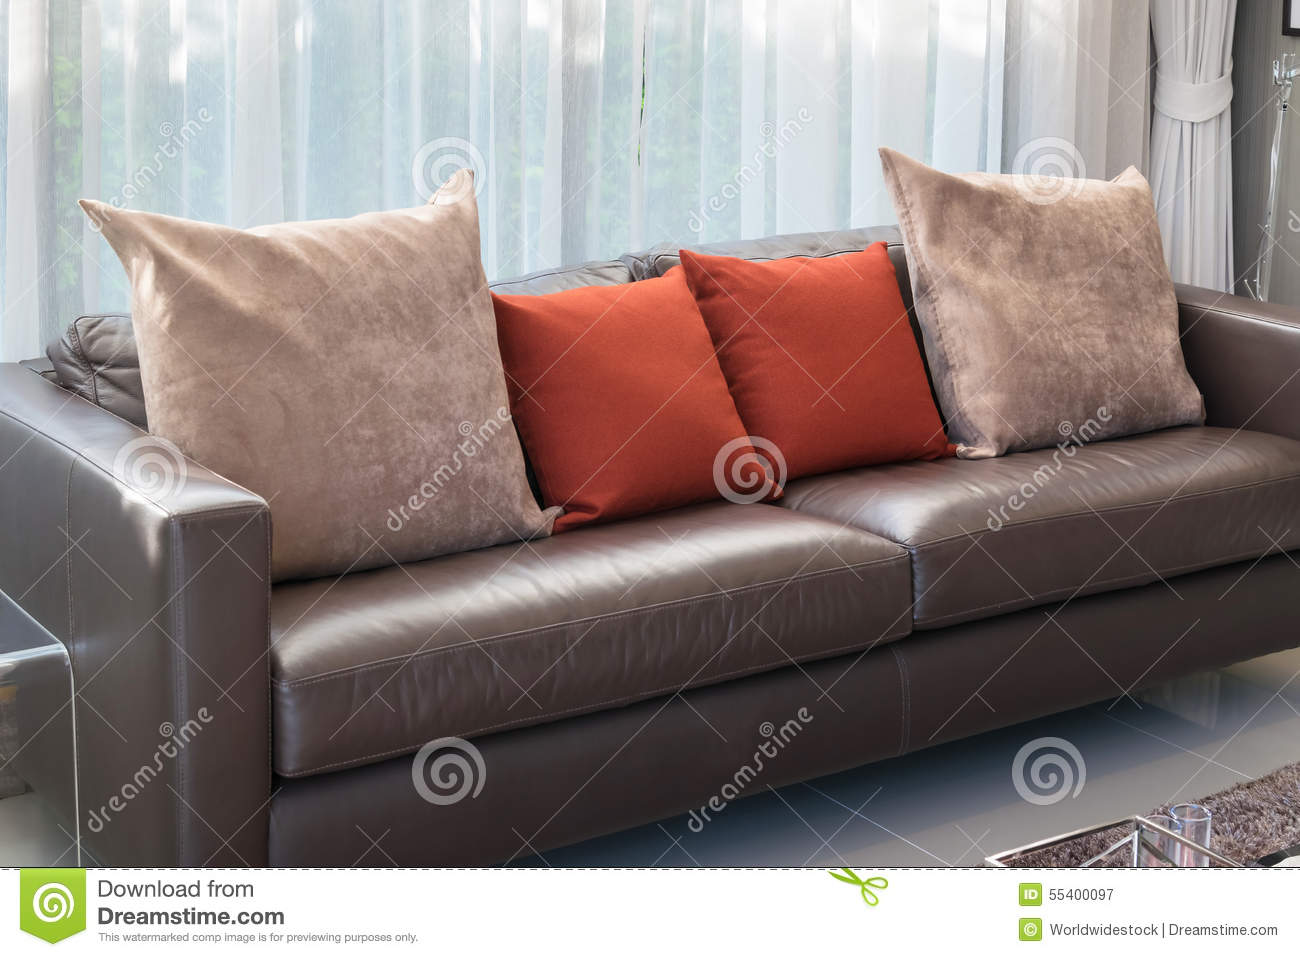 Brown And Red Pillow On Sofa With Lamp In Living Room Royalty Free Stock Photography